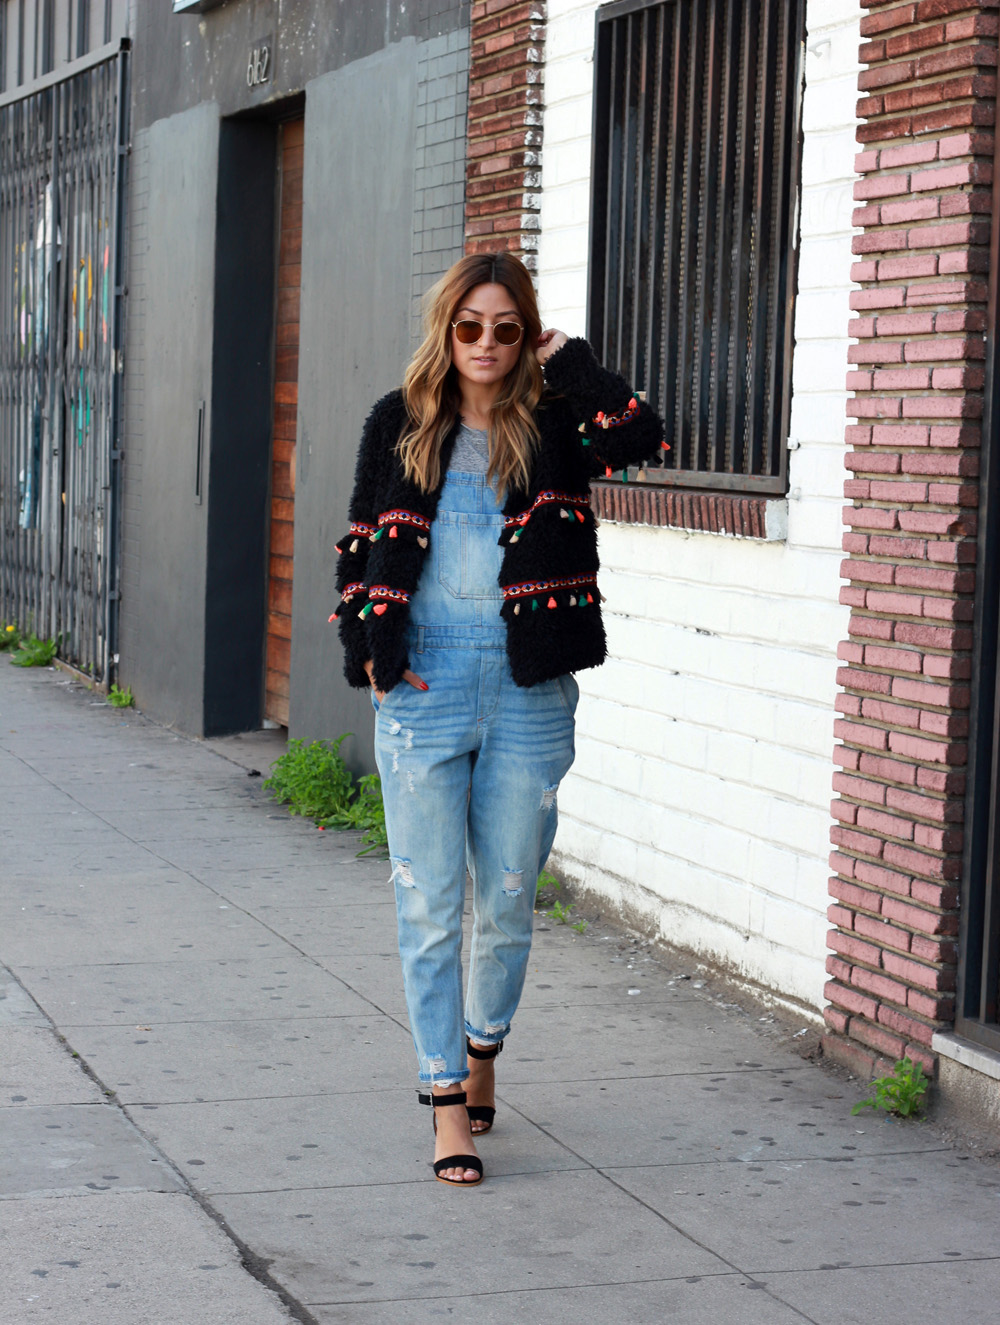 20 fun facts about me, fun facts, about, melrodstyle, la blogger, fashion, blogger, beauty blogger, street style, ootd, forever 21, outfit, mexican blogger, hispanic blogger, latina blogger